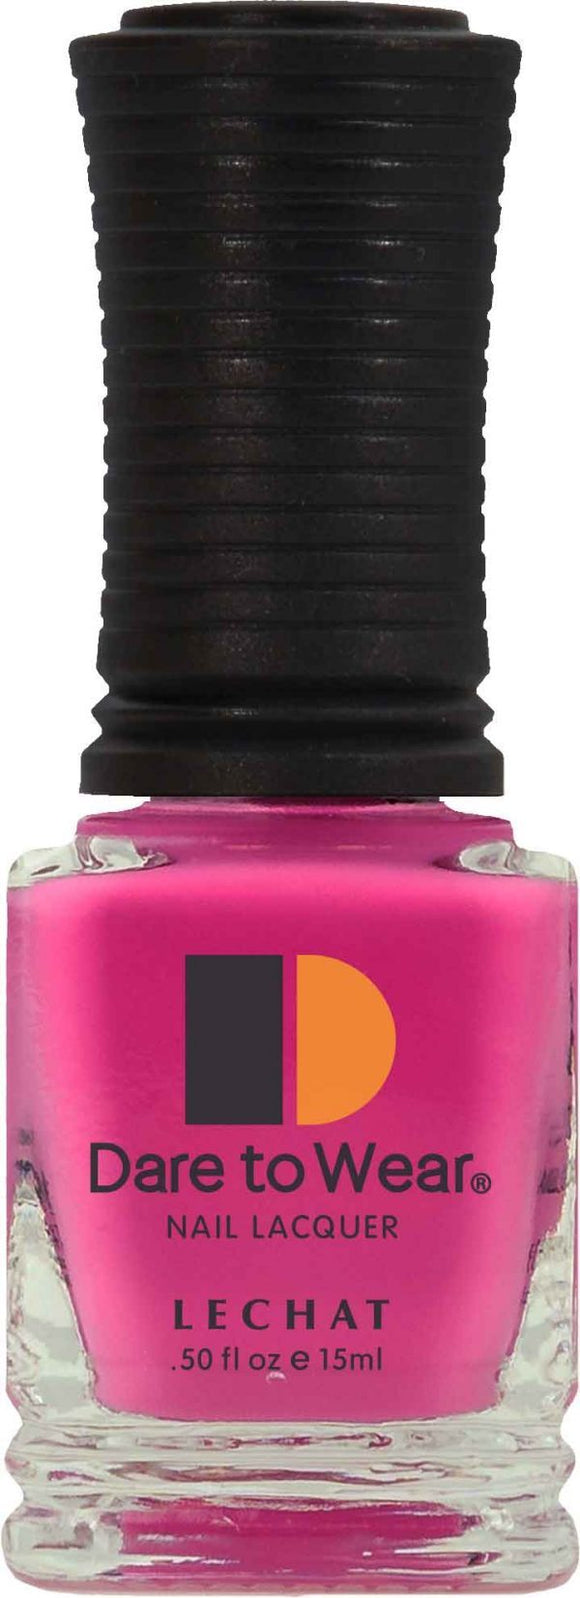 Lechat Nail Lacquers DW234 Gypsy Rose